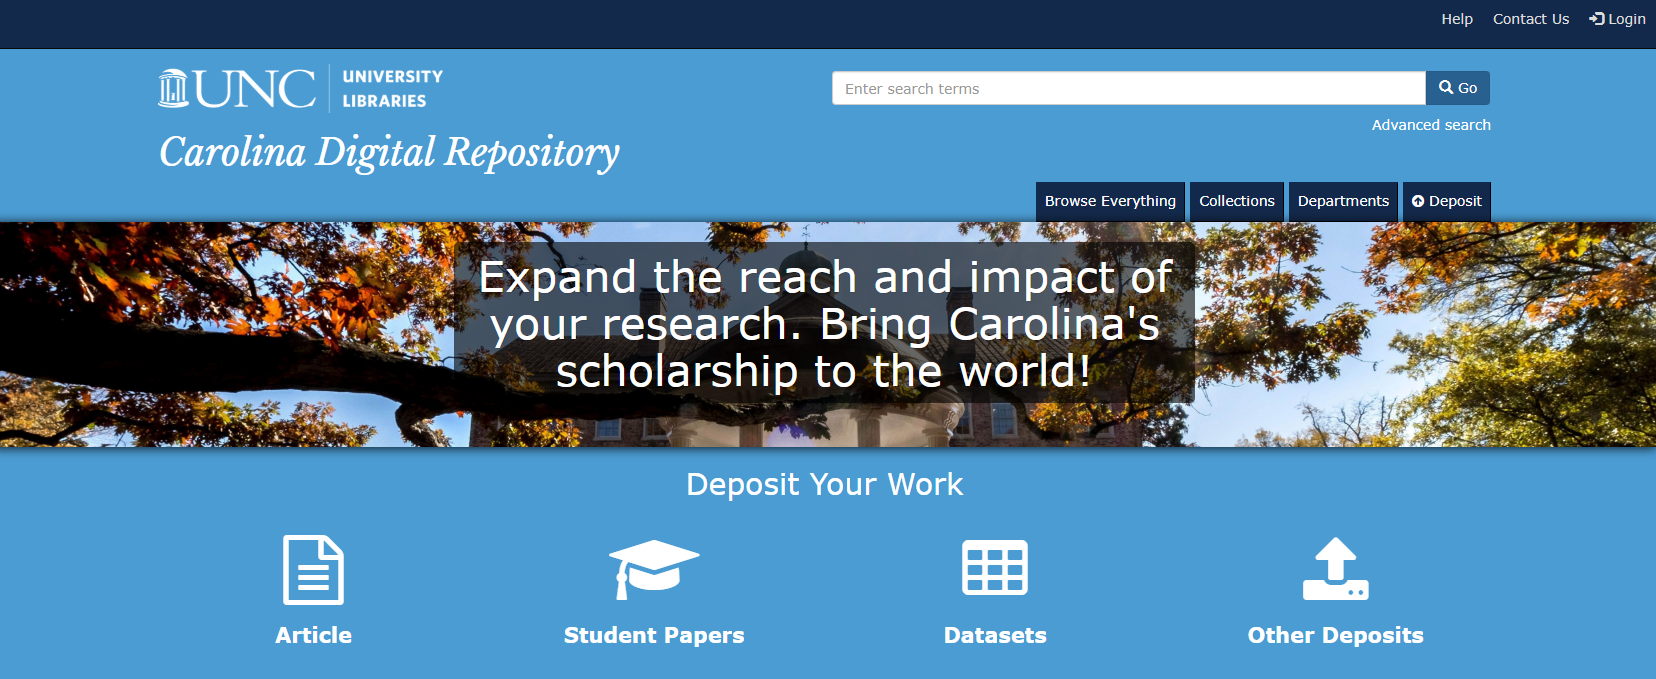 Screenshot of the Carolina Digital Repository homepage